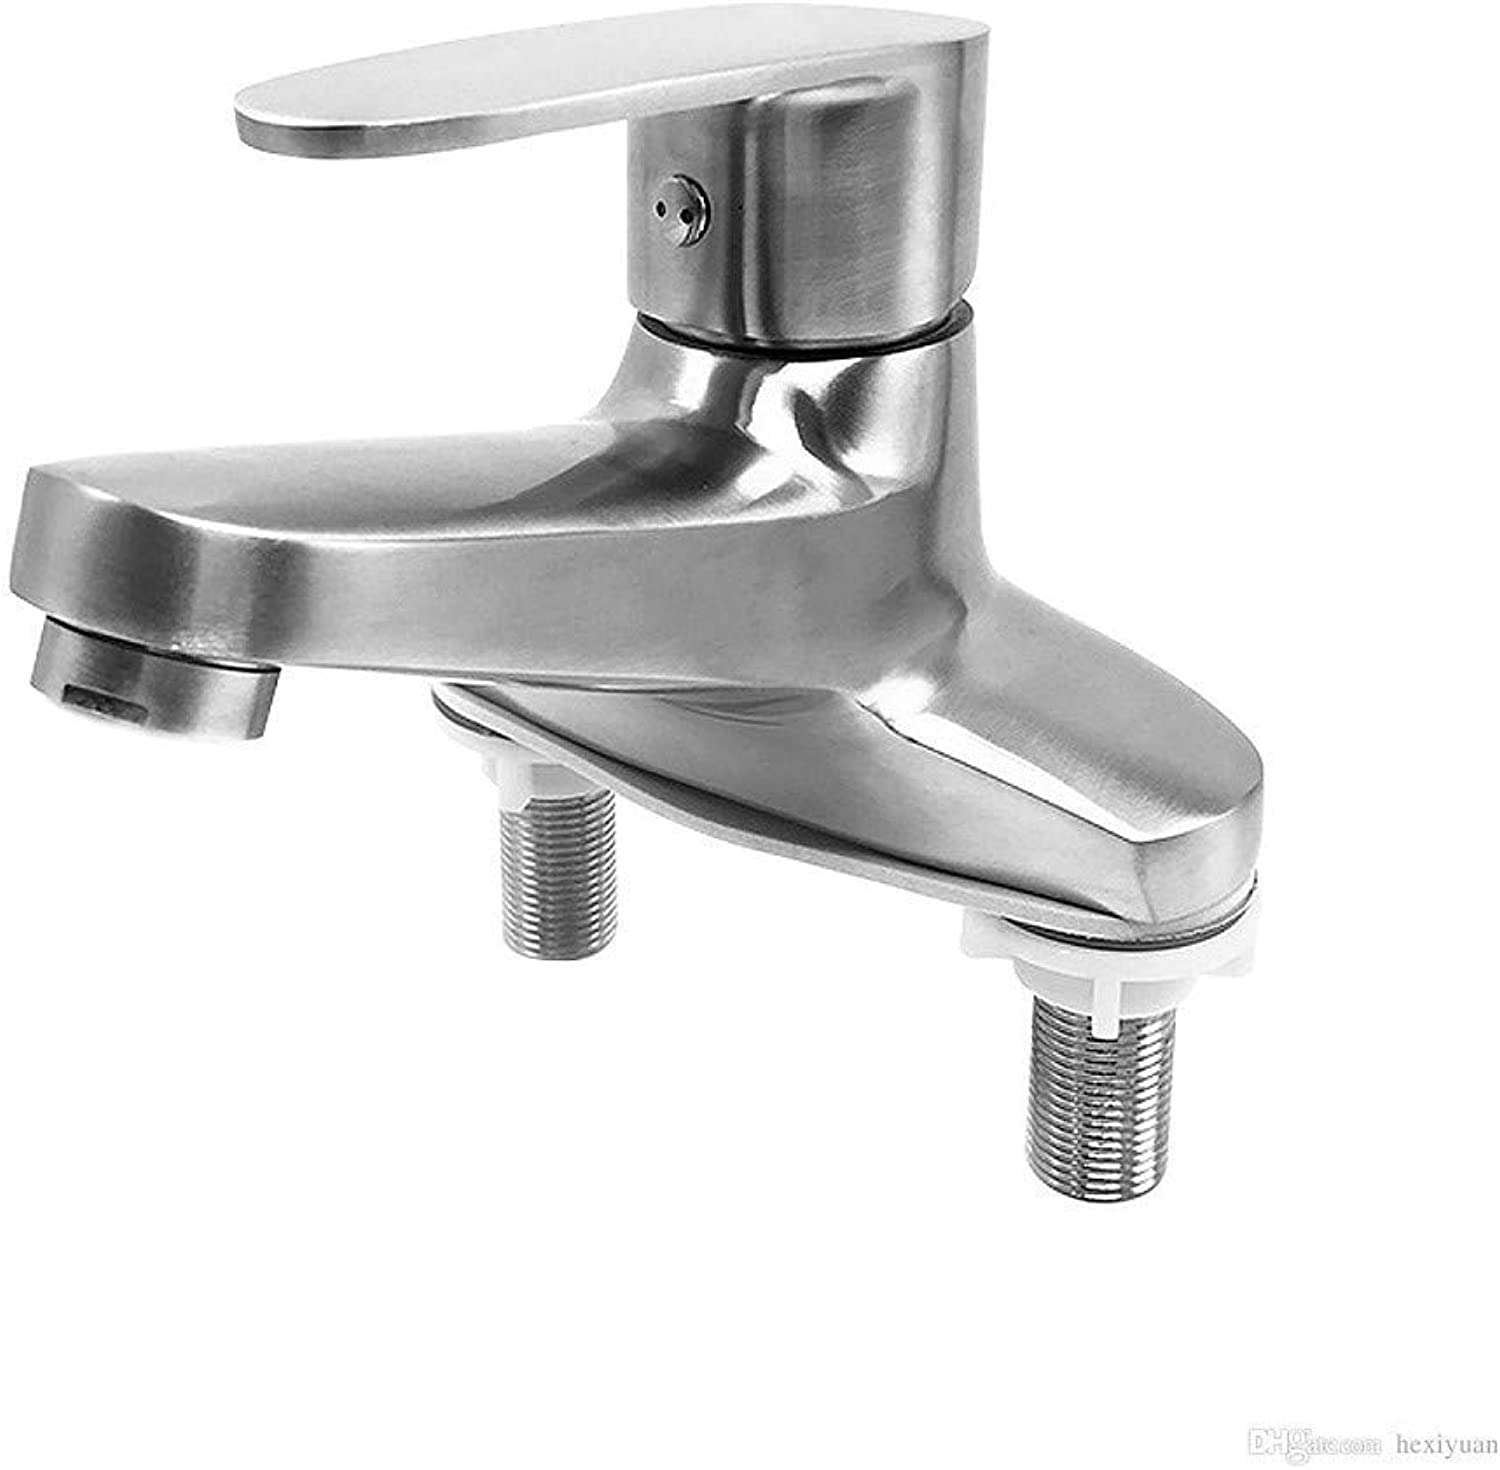 Oudan 304 Stainless Steel Sink Faucet Double Hole Hot and Cold Basin Faucet (color   -, Size   -)